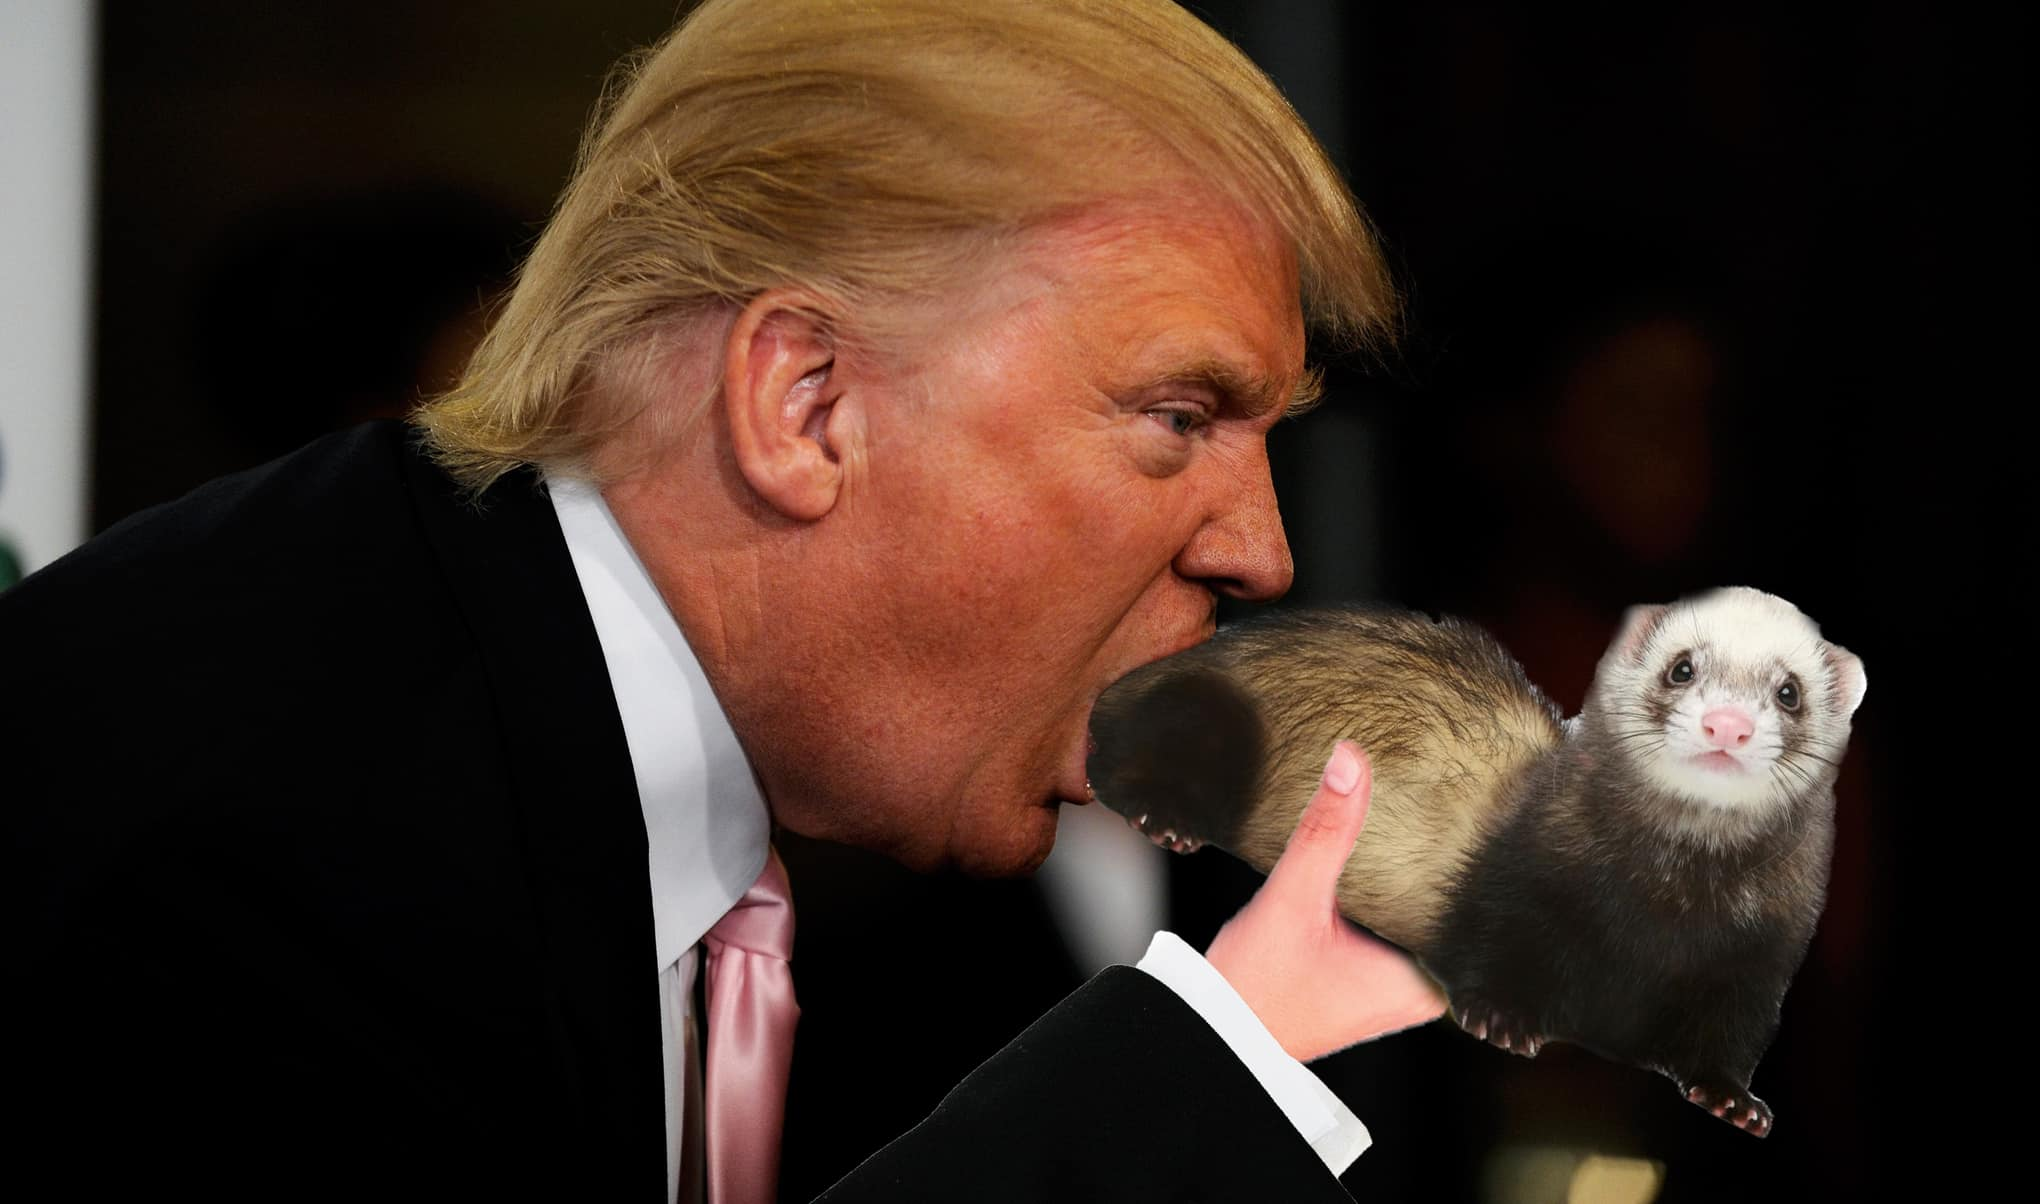 Please Don't Trust This Photo Of Donald Trump Eating An Entire Ferret